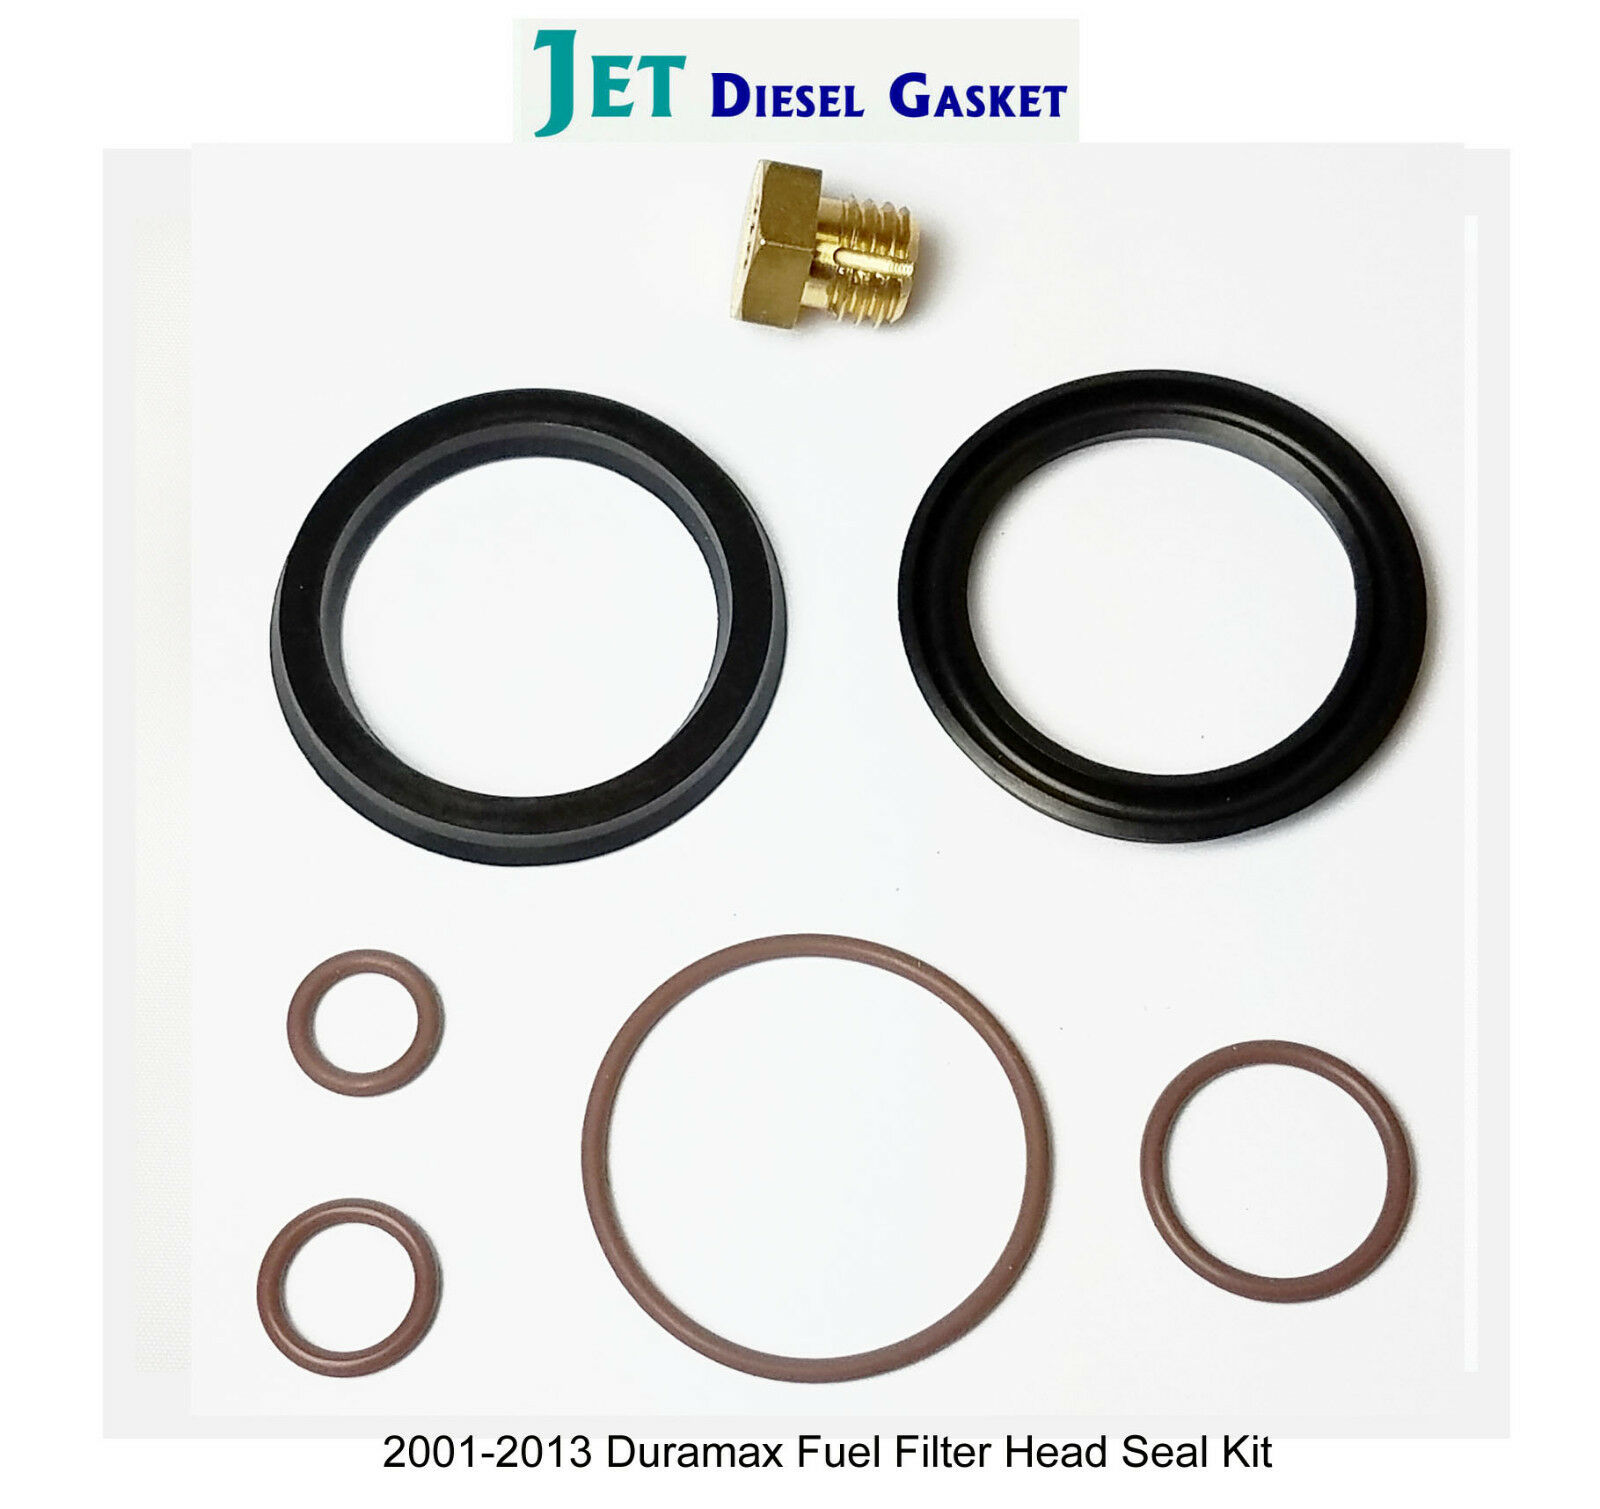 hight resolution of duramax fuel filter head rebuild seal kit with viton o rings with bleeder screw for sale online